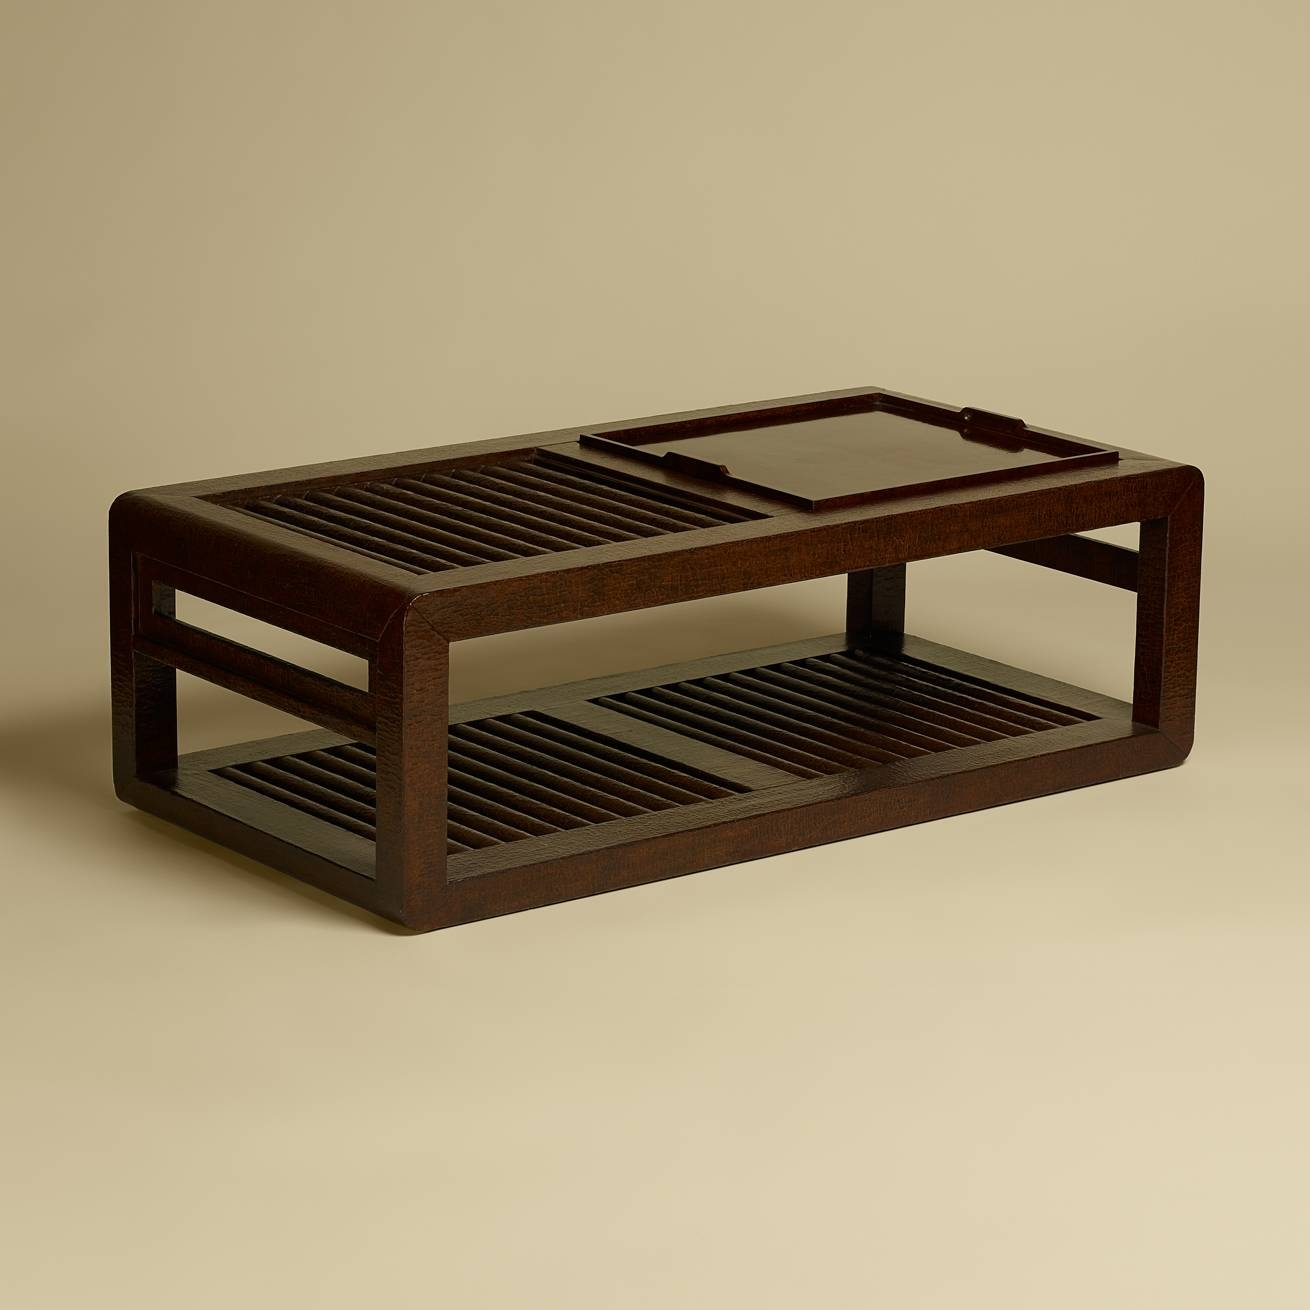 Rose Tarlow with regard to Chinese Coffee Tables (Image 26 of 30)